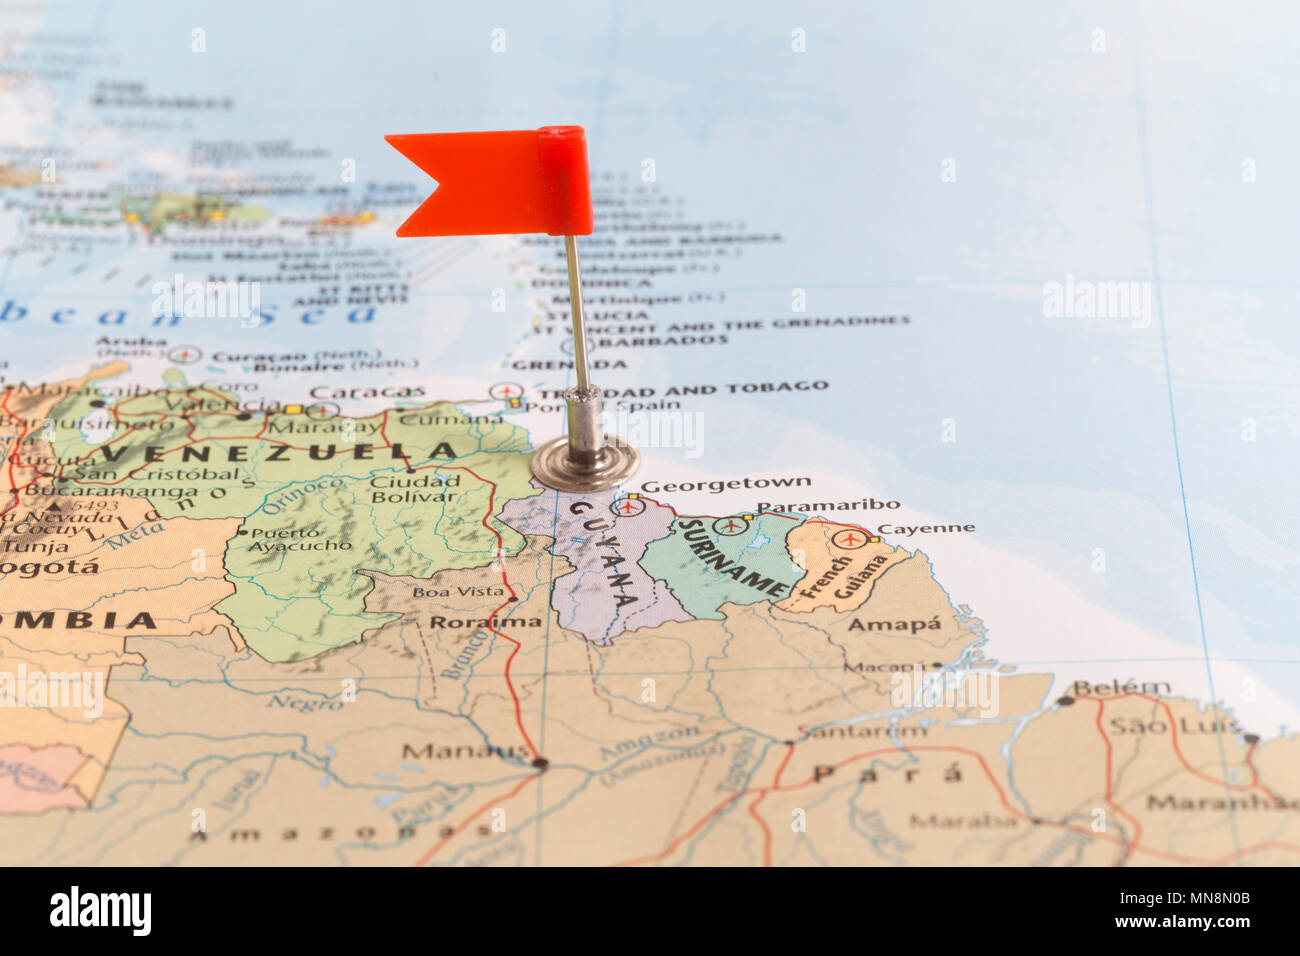 Where Is Guyana Located On The World Map.Small Red Flag Marking The African Country Of Guyana On A World Map